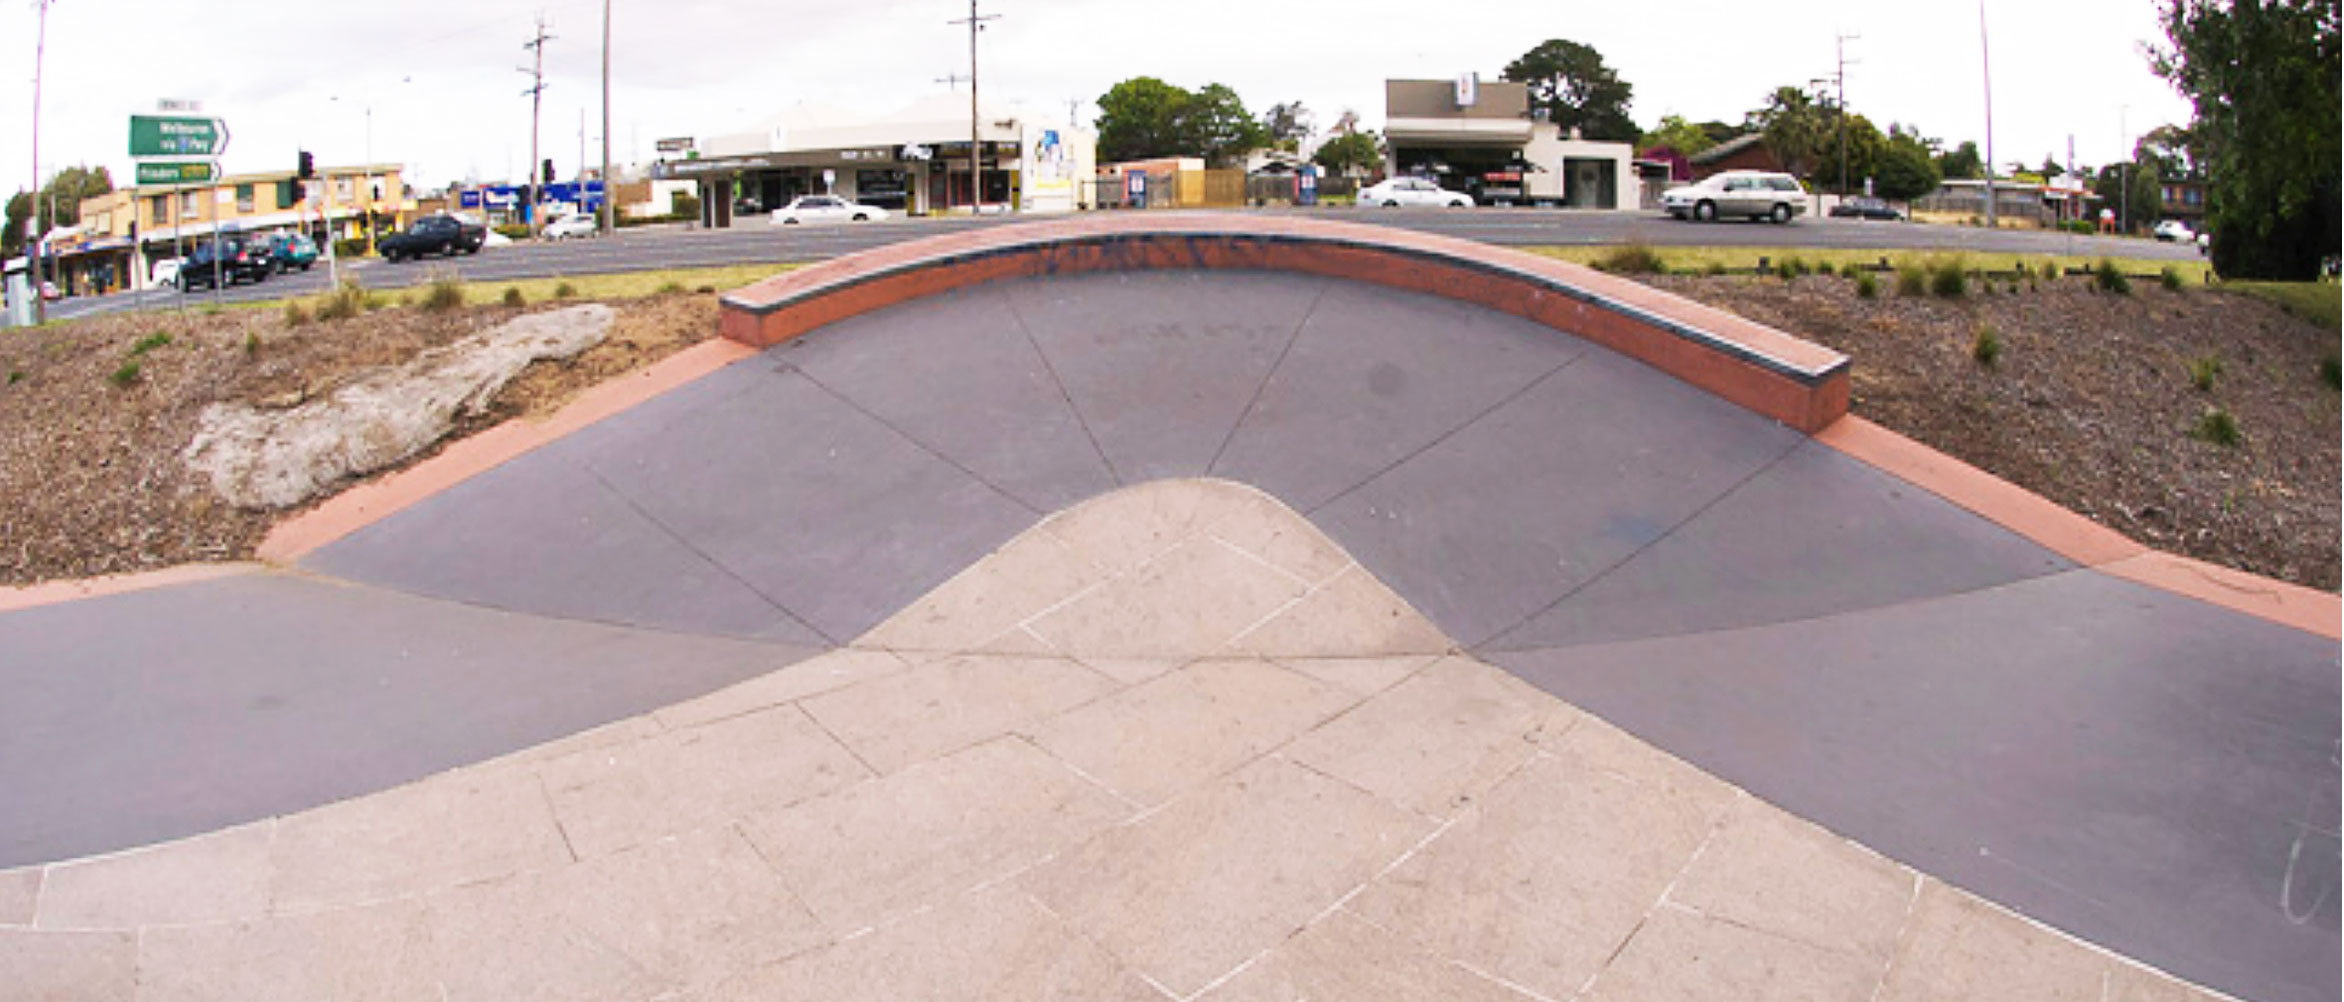 Rosebud skate plaza mornington peninsula, Concrete Skateparks